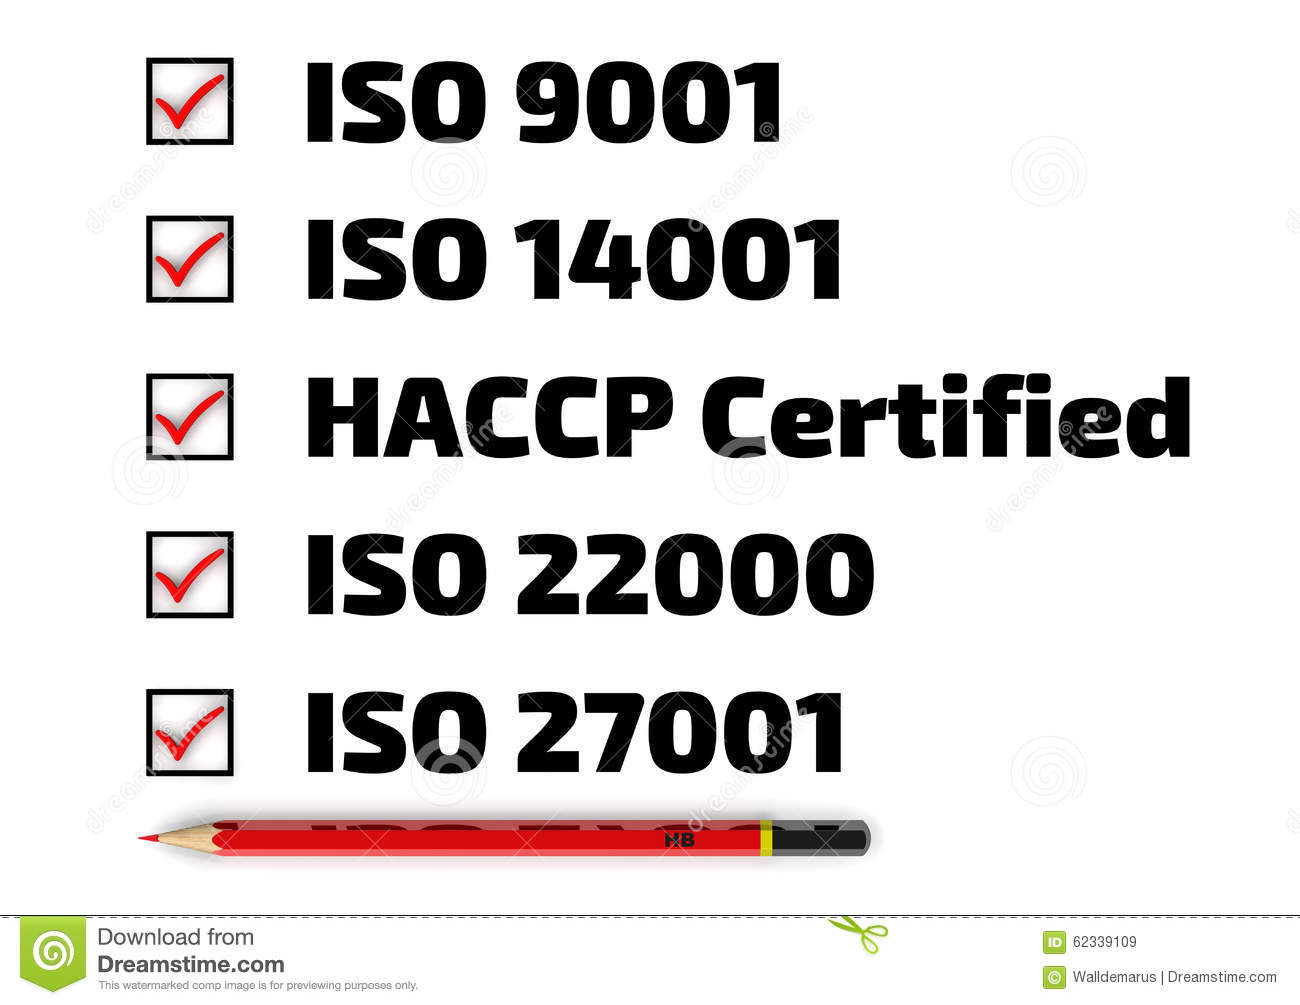 Software Testing - ISO Standards